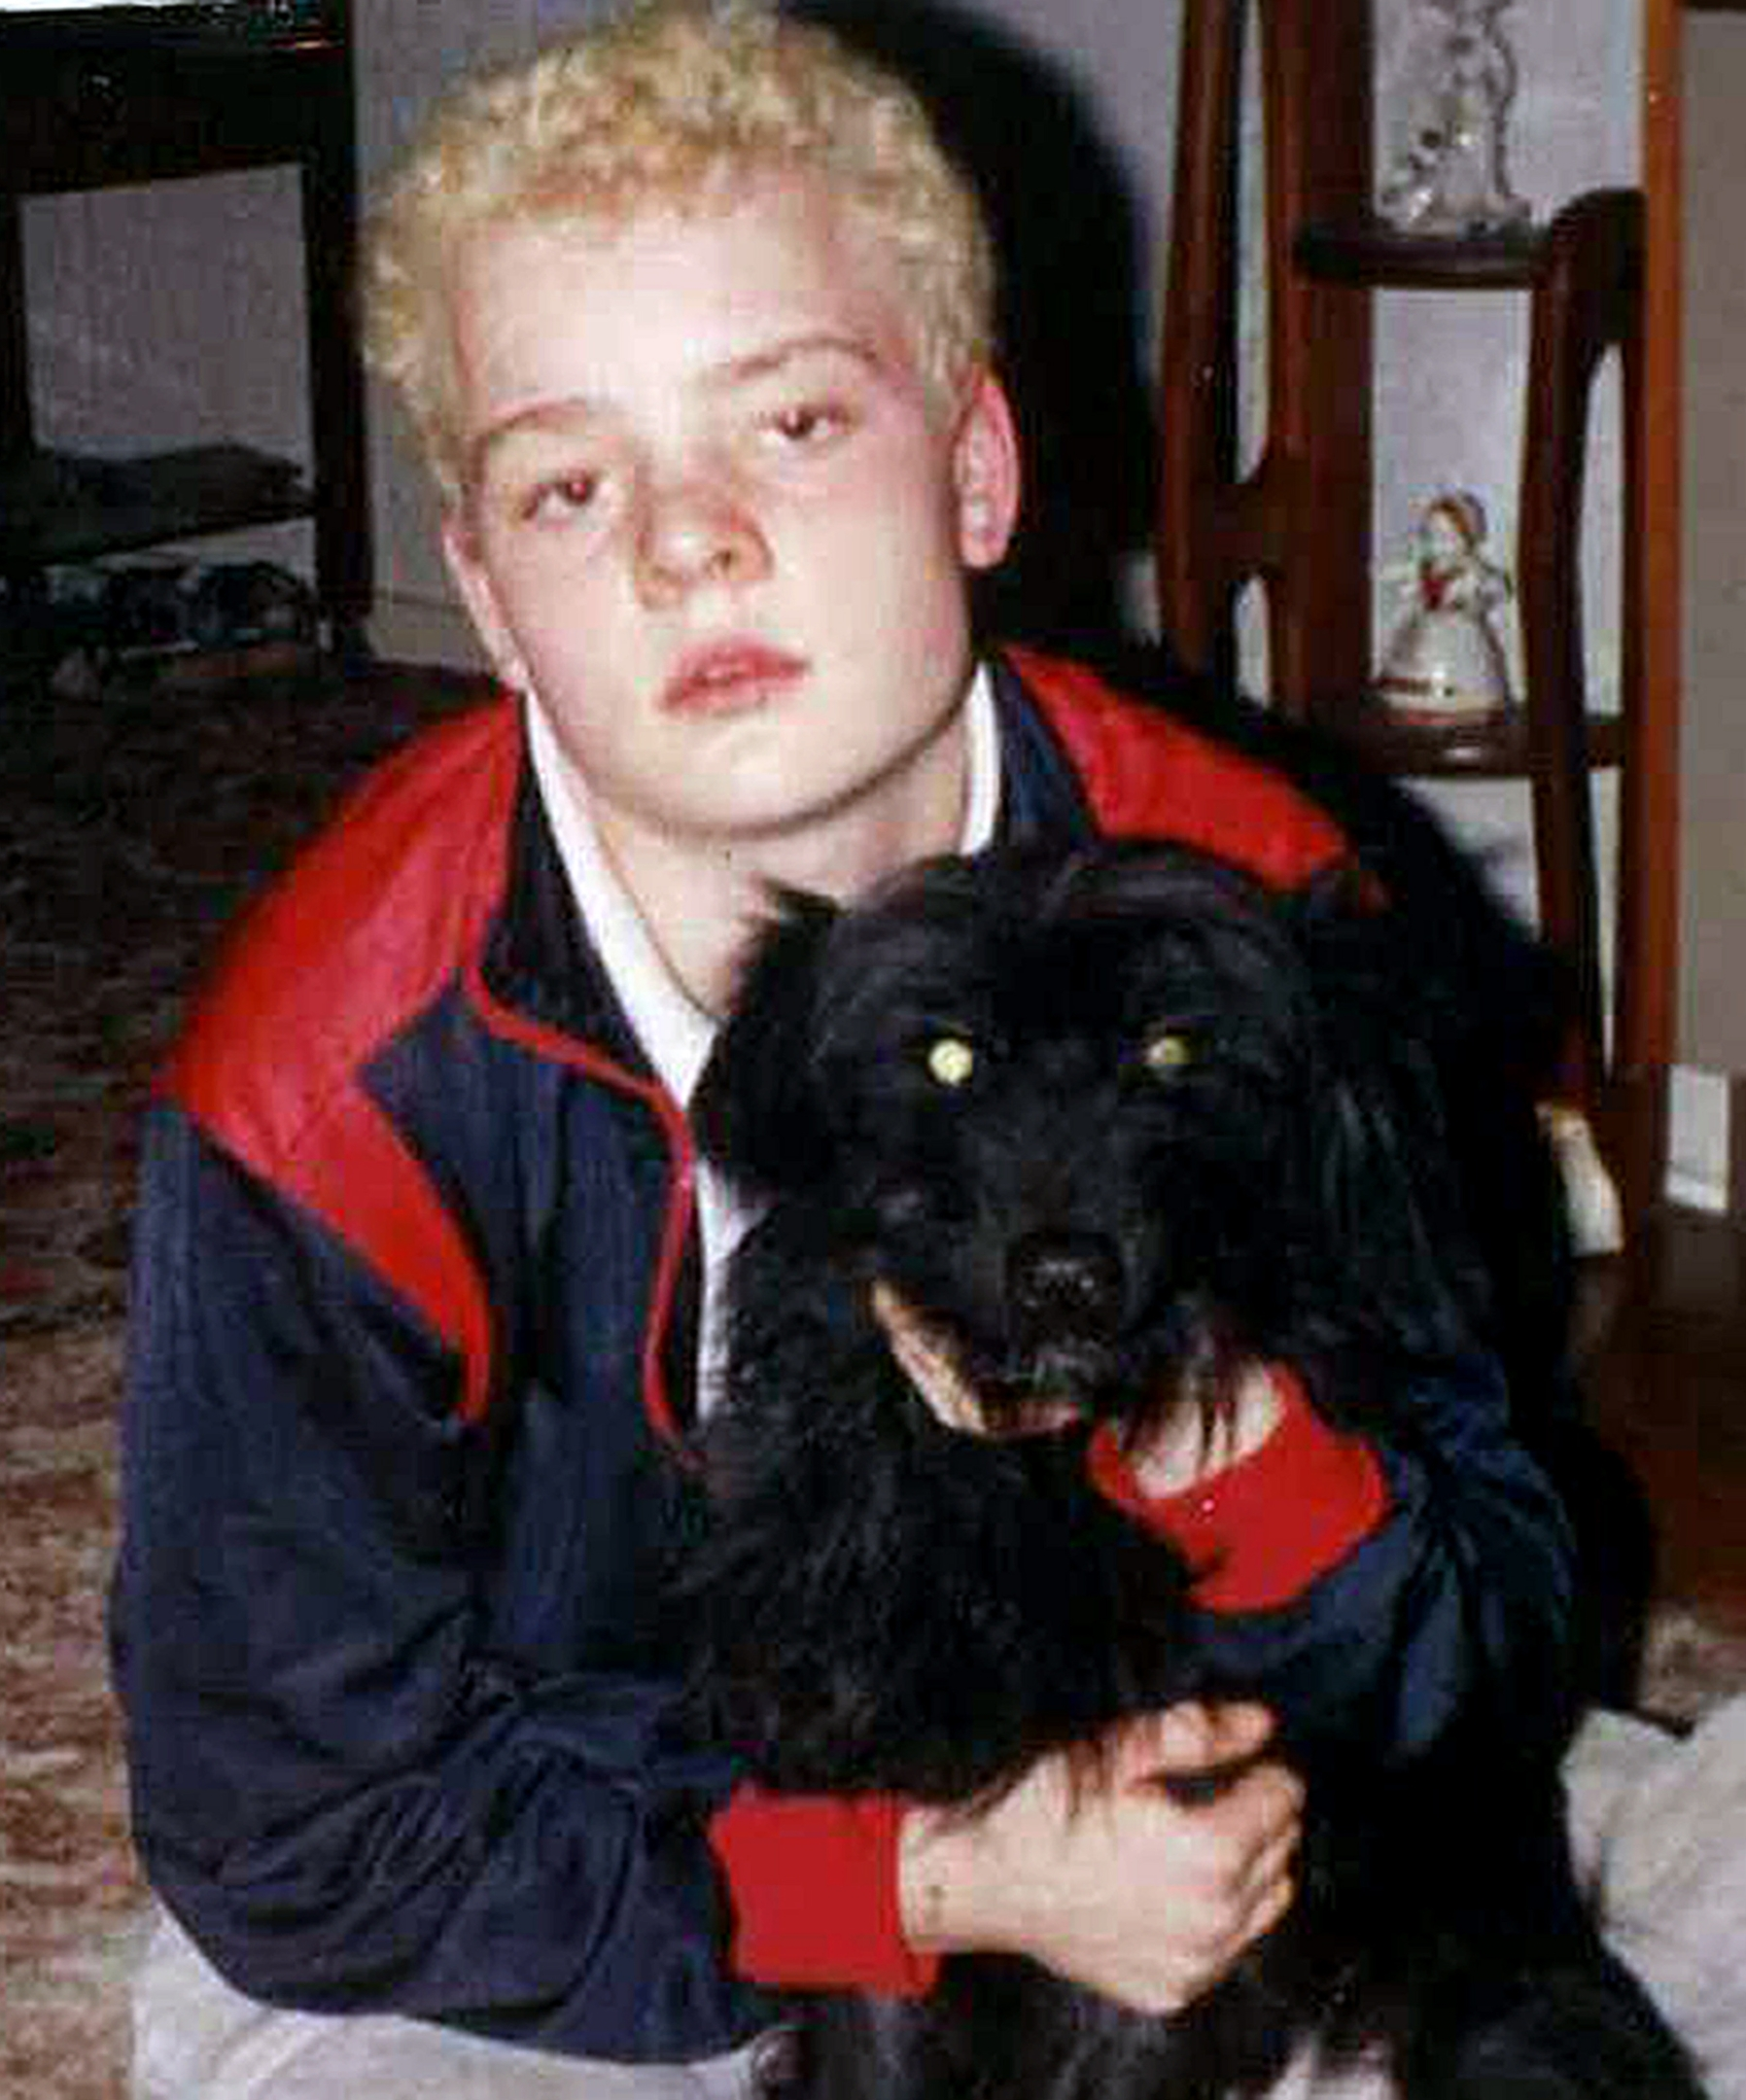 file photo issued by Cleveland Police of Angela Wrightson, taken some years before her death as two teenage girls have been found guilty at Leeds Crown Court of murdering the 39-year-old in her Hartlepool home.